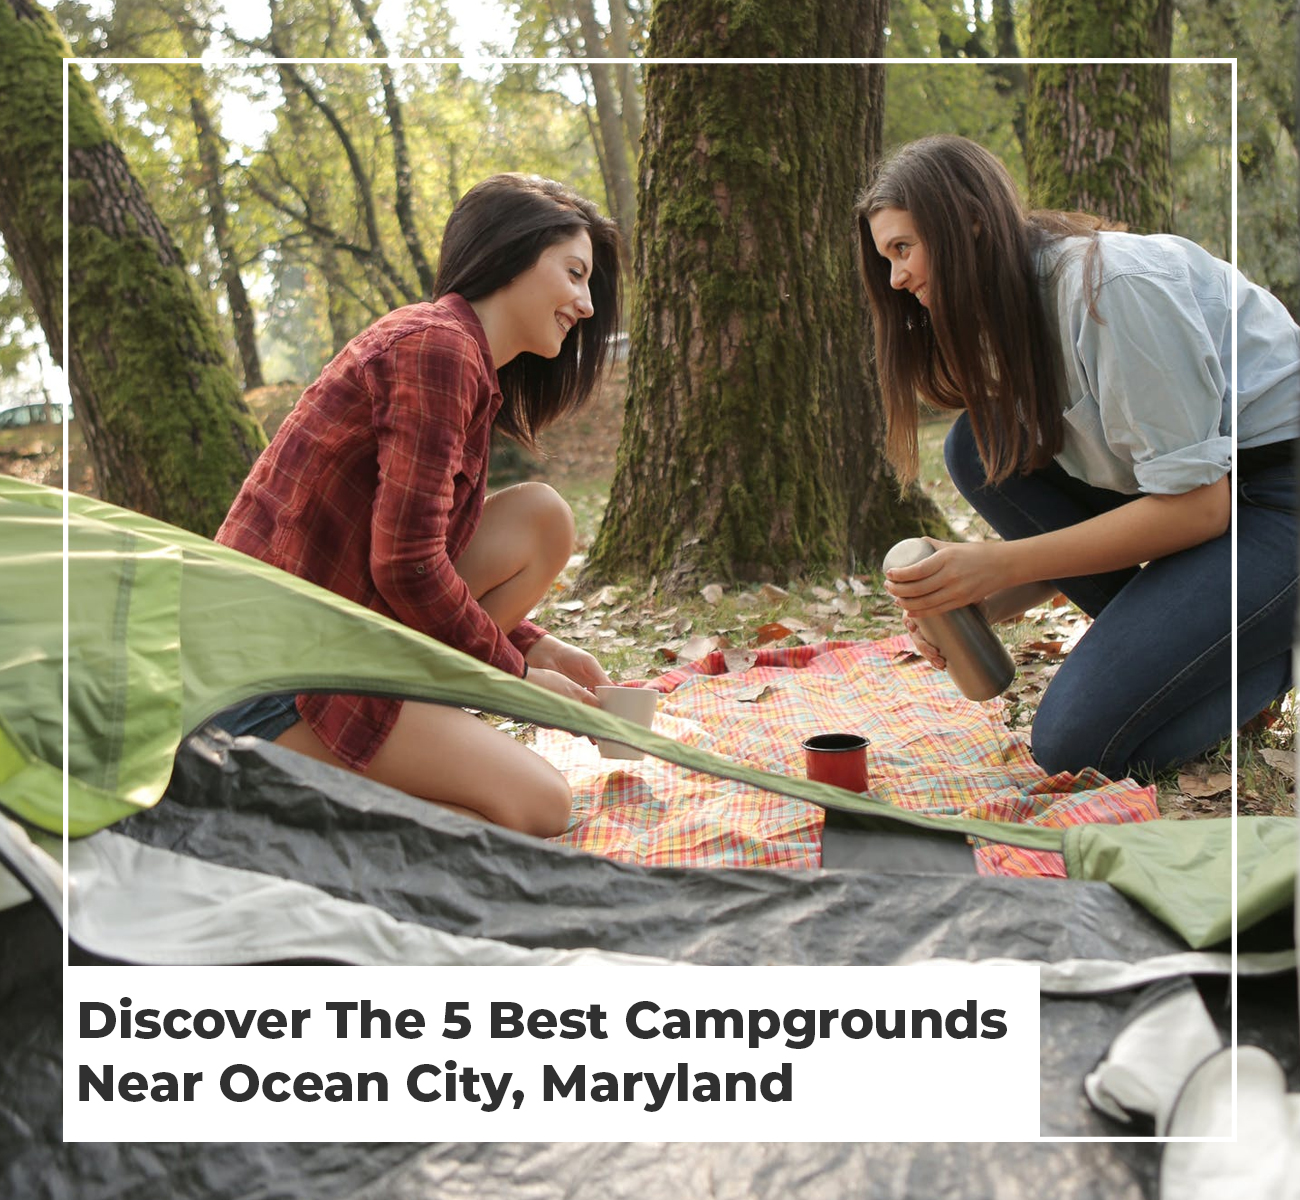 Best Campgrounds in Maryland